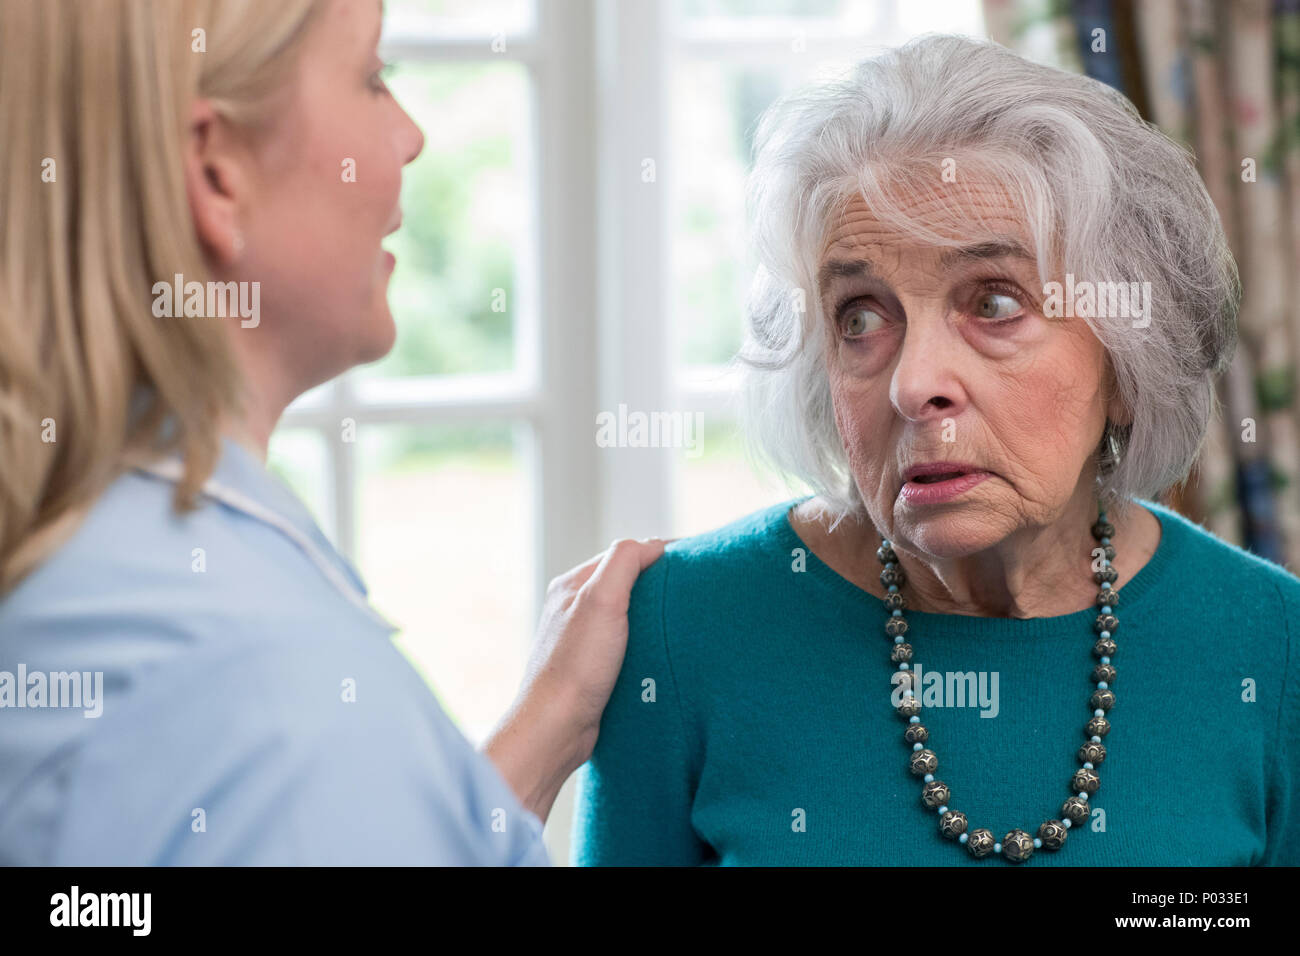 Care Worker Talking To Depressed Senior Woman At Home - Stock Image